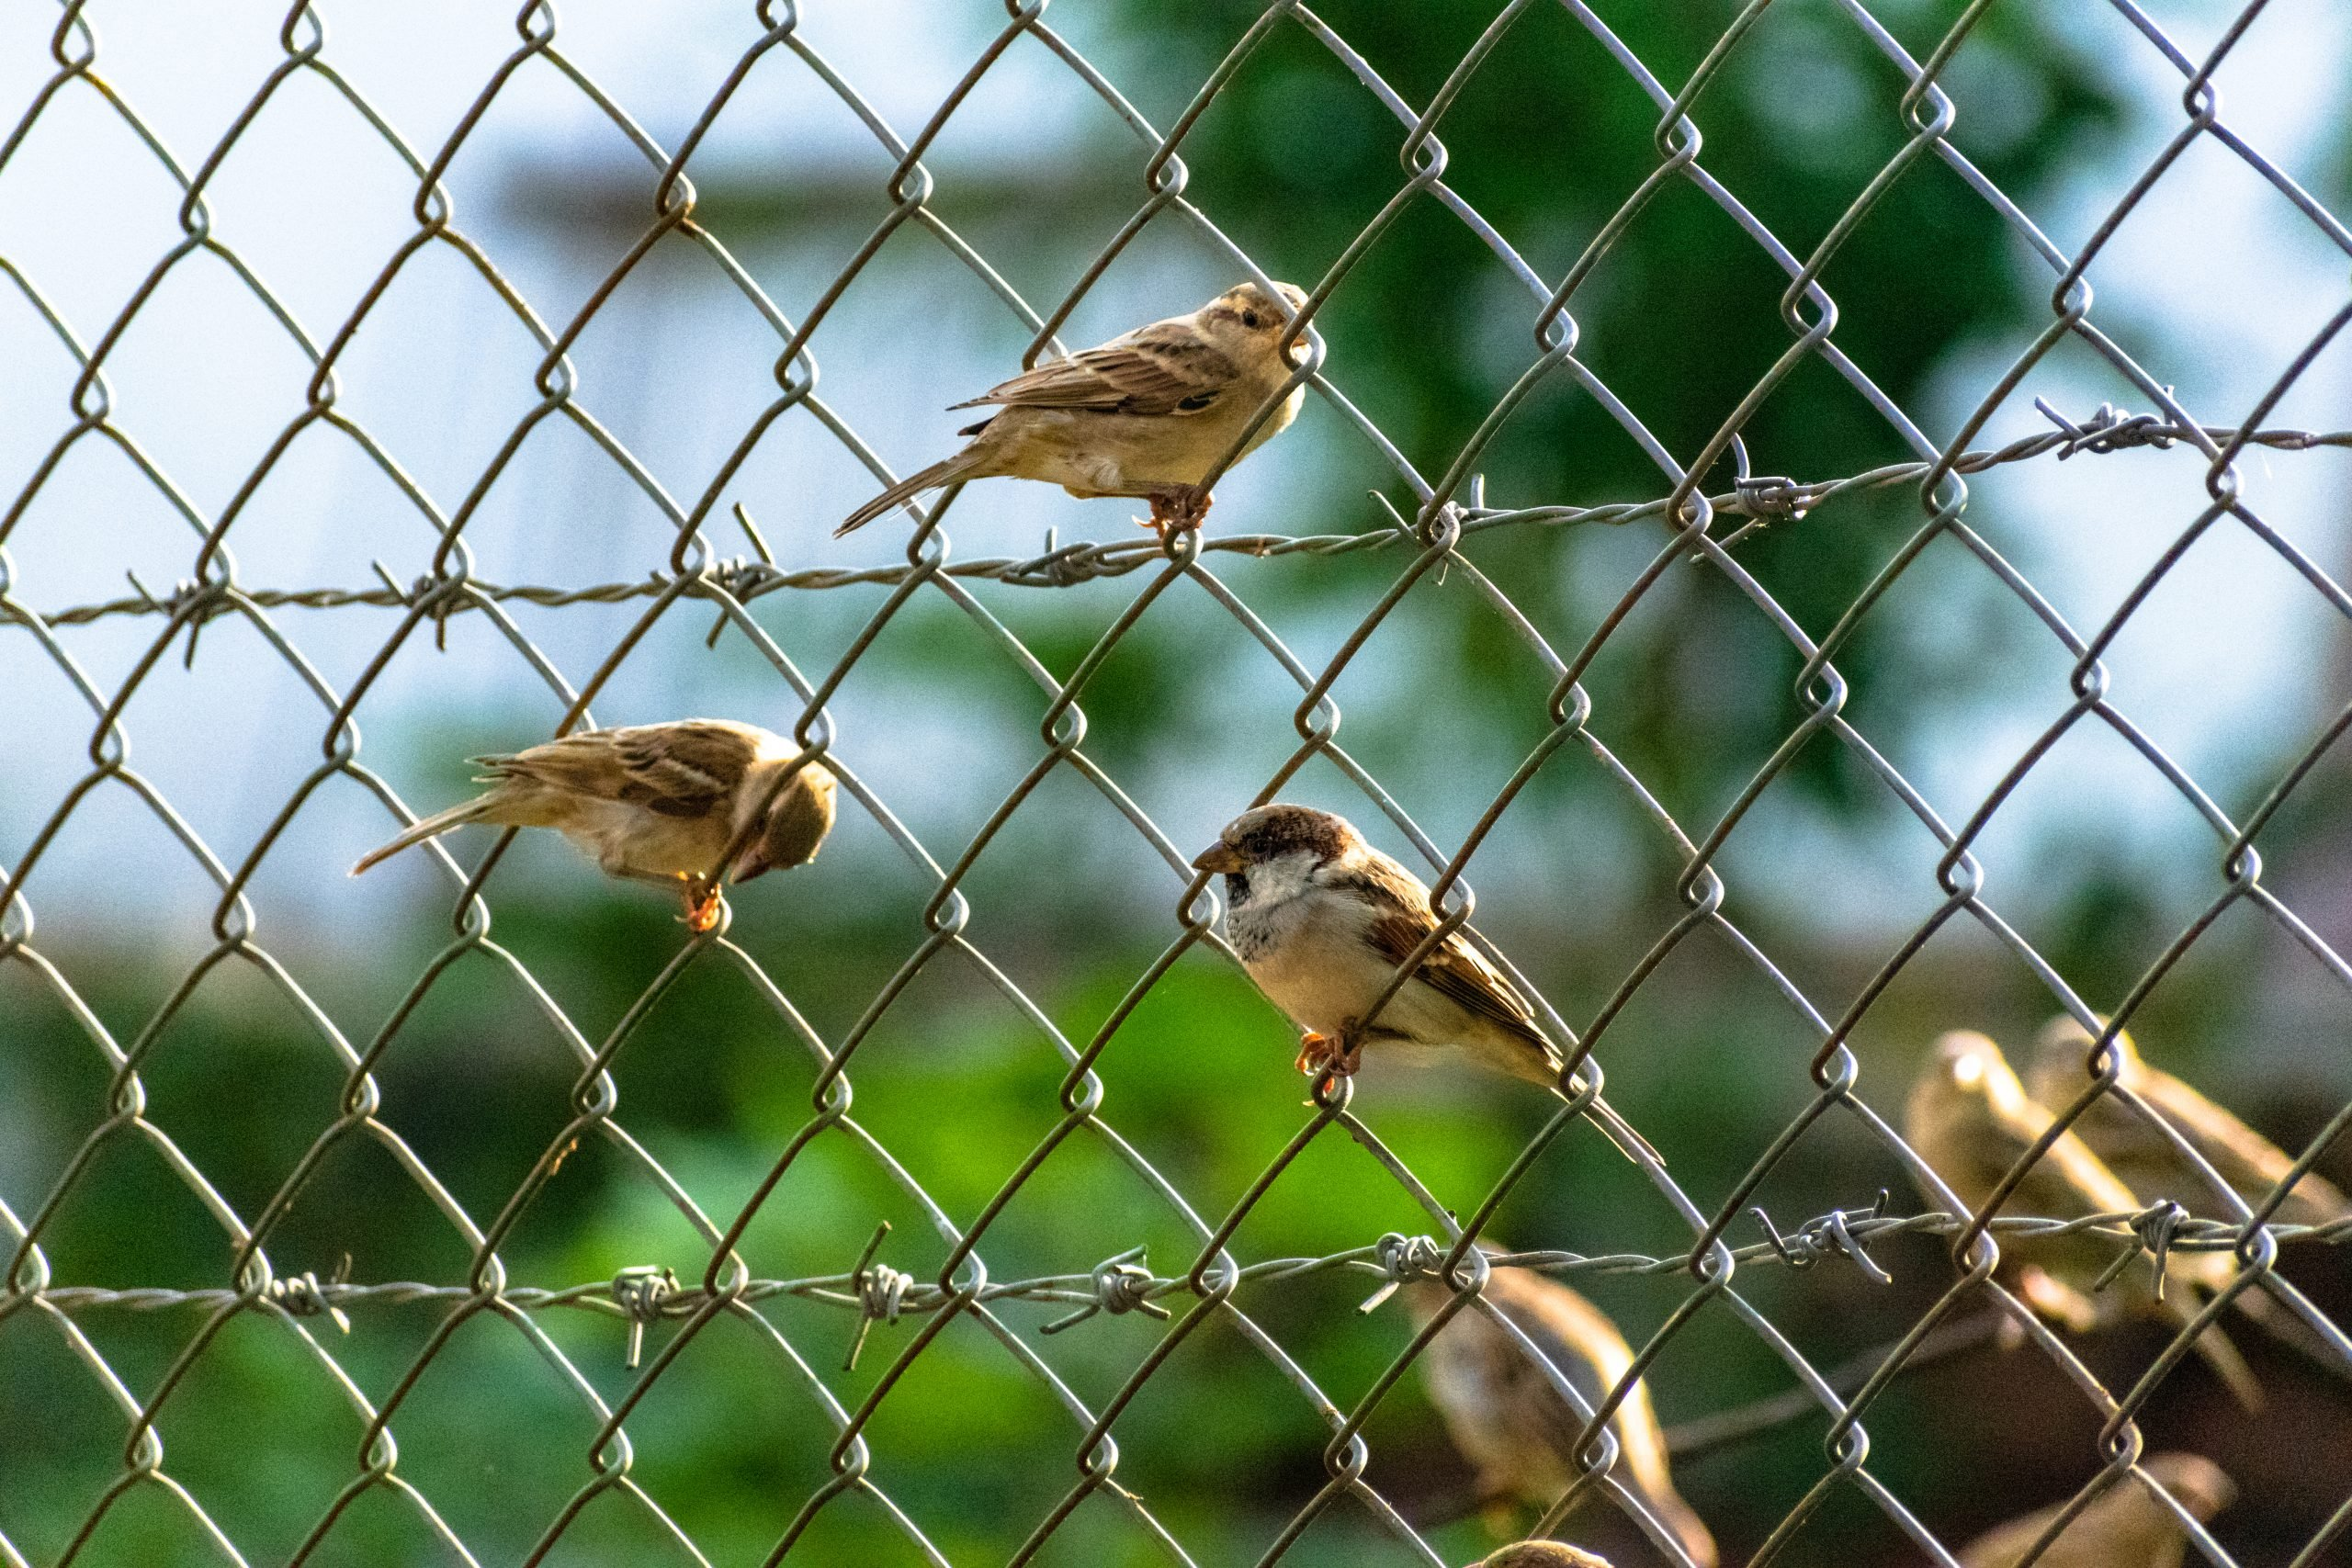 House sparrow in the Fence on Focus